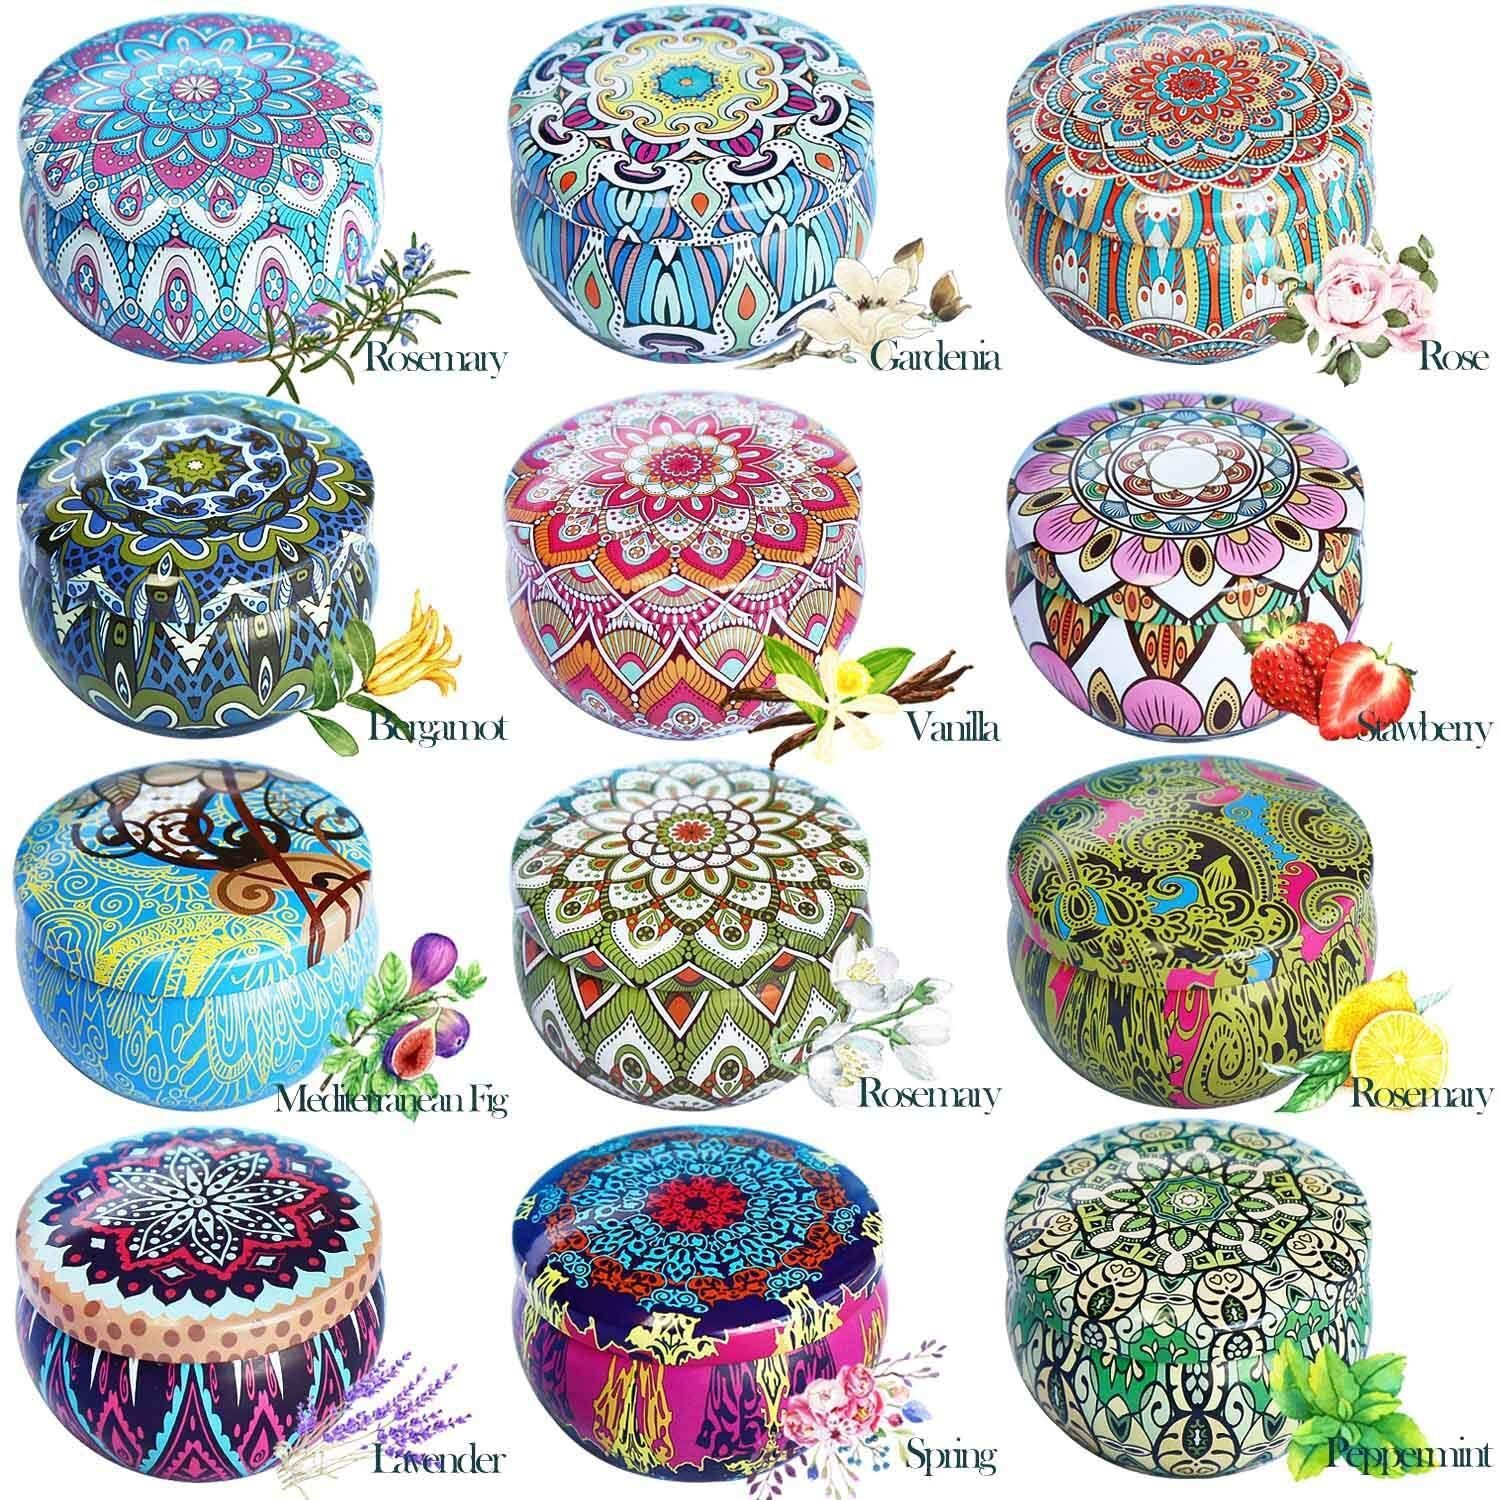 12Pcs/Set Soy Wax Scented Candles Ethnic Style for Travel Home Wedding Birthday Decoration 23 * 15.8 * 10cm